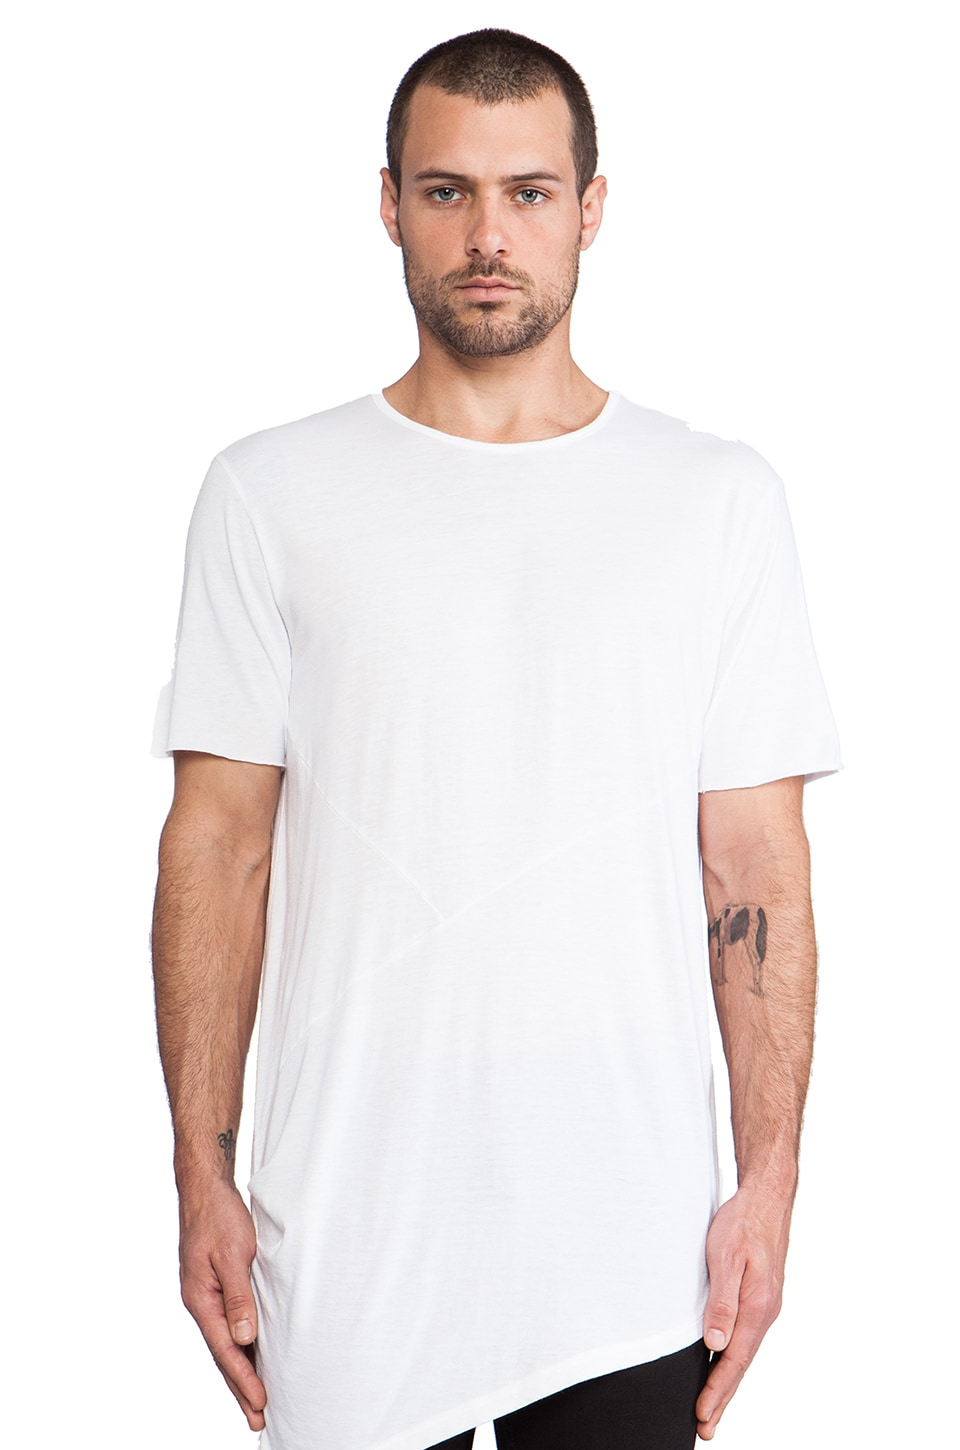 Drifter Russell Tee in White